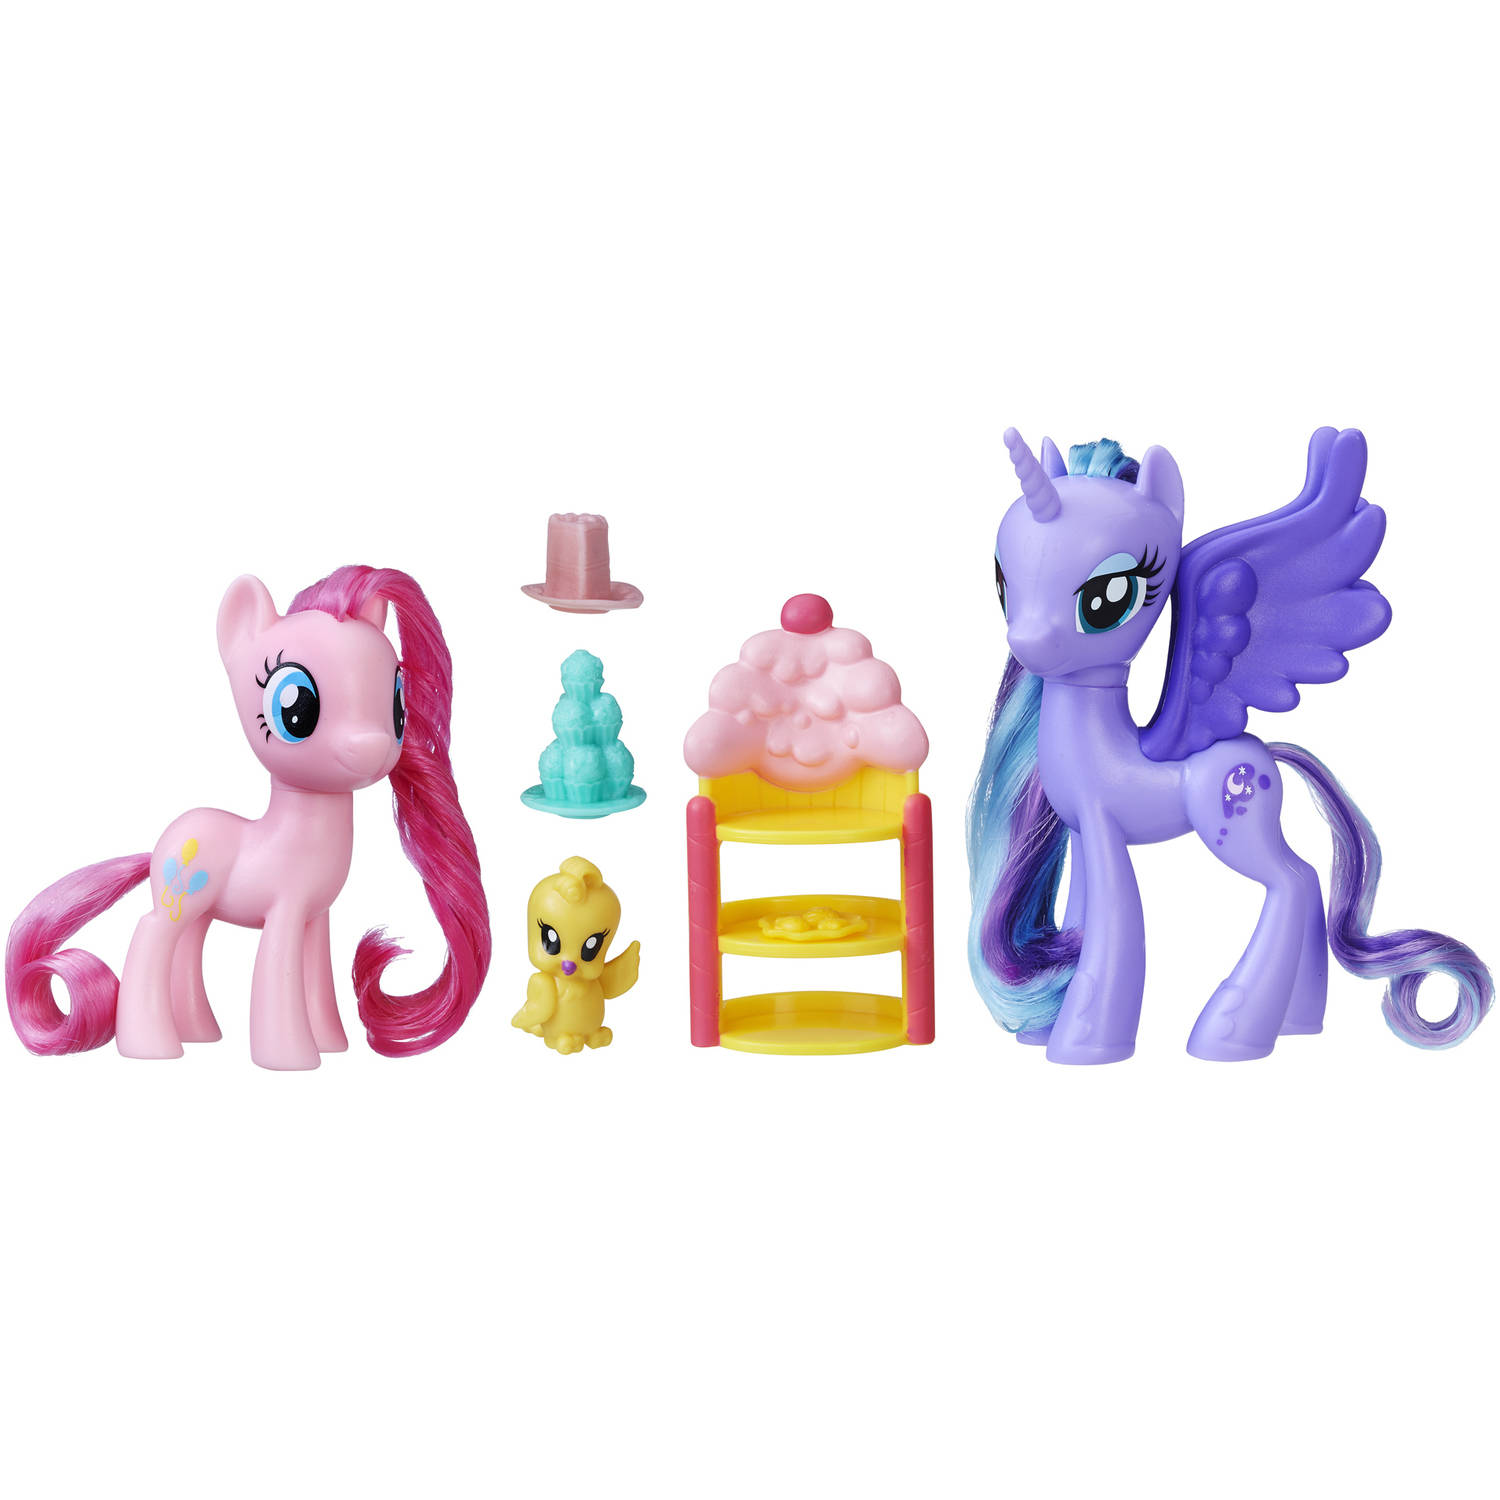 My Little Pony Princess Luna & Pinkie Pie Sweet Celebration Set by Hasbro